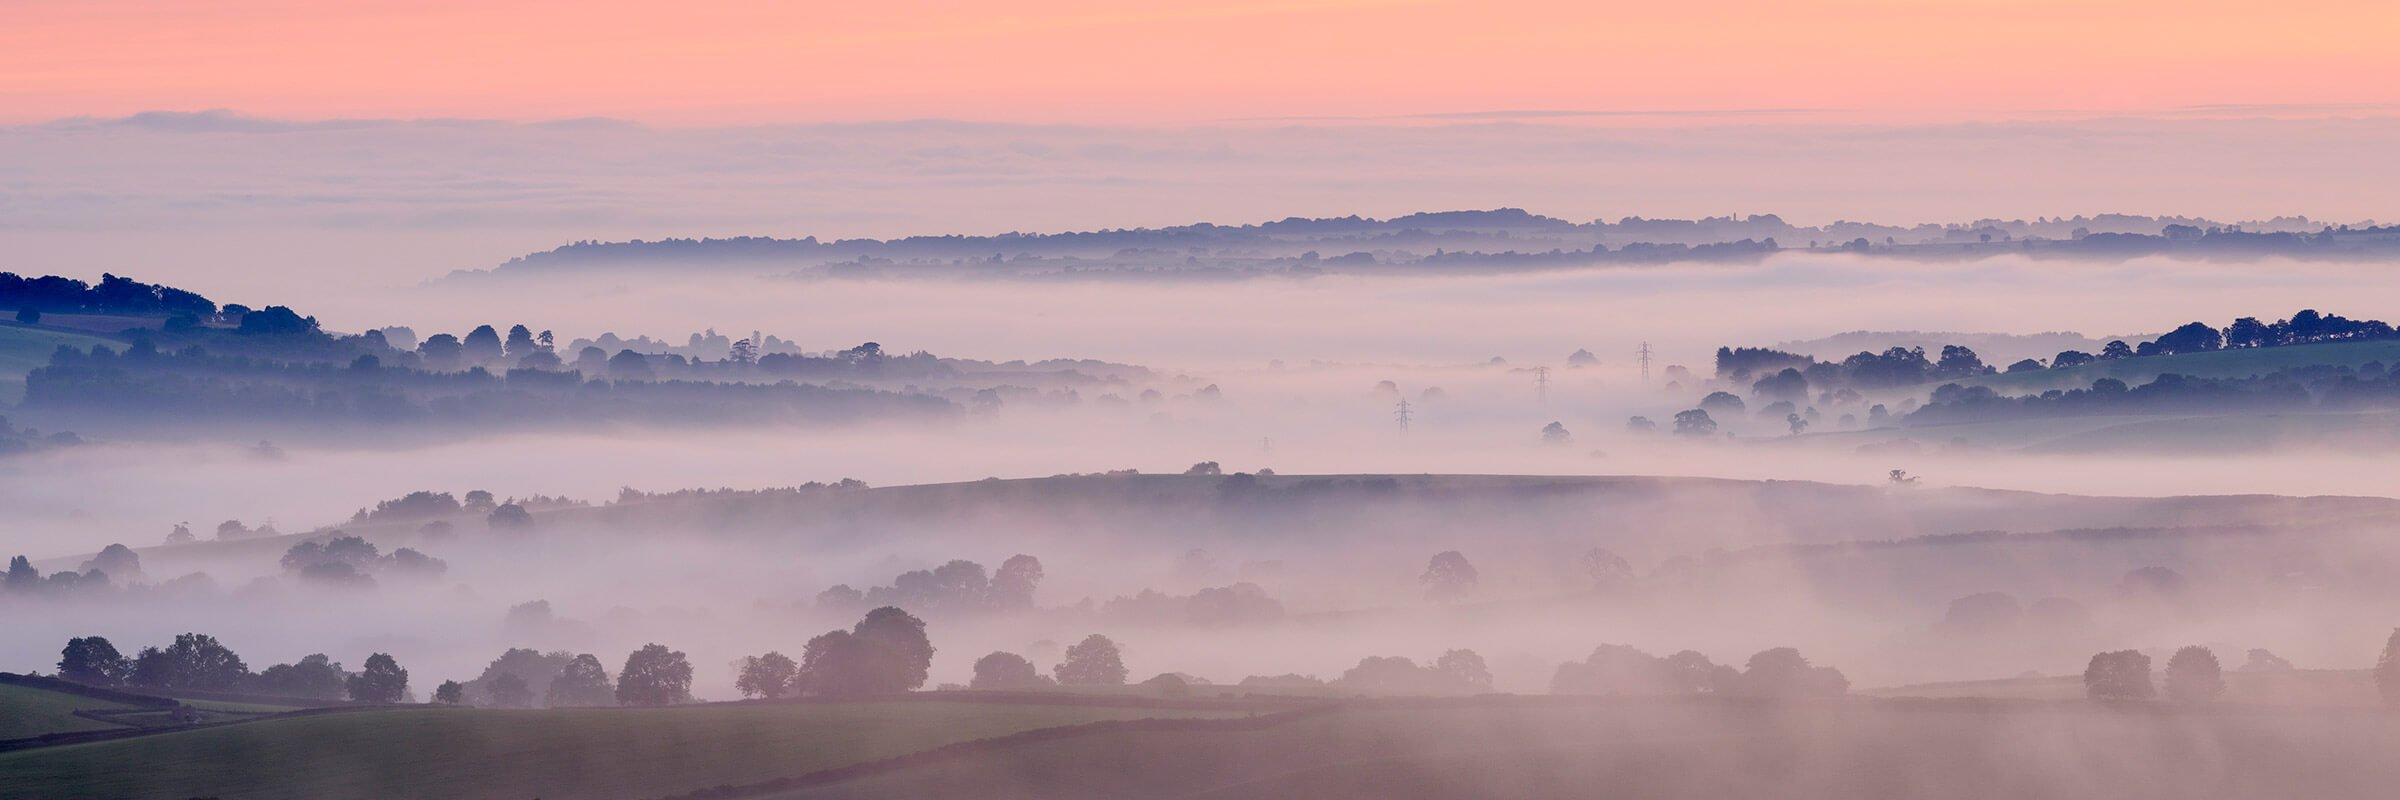 Mark Bauer Photography | Dorset landscapes